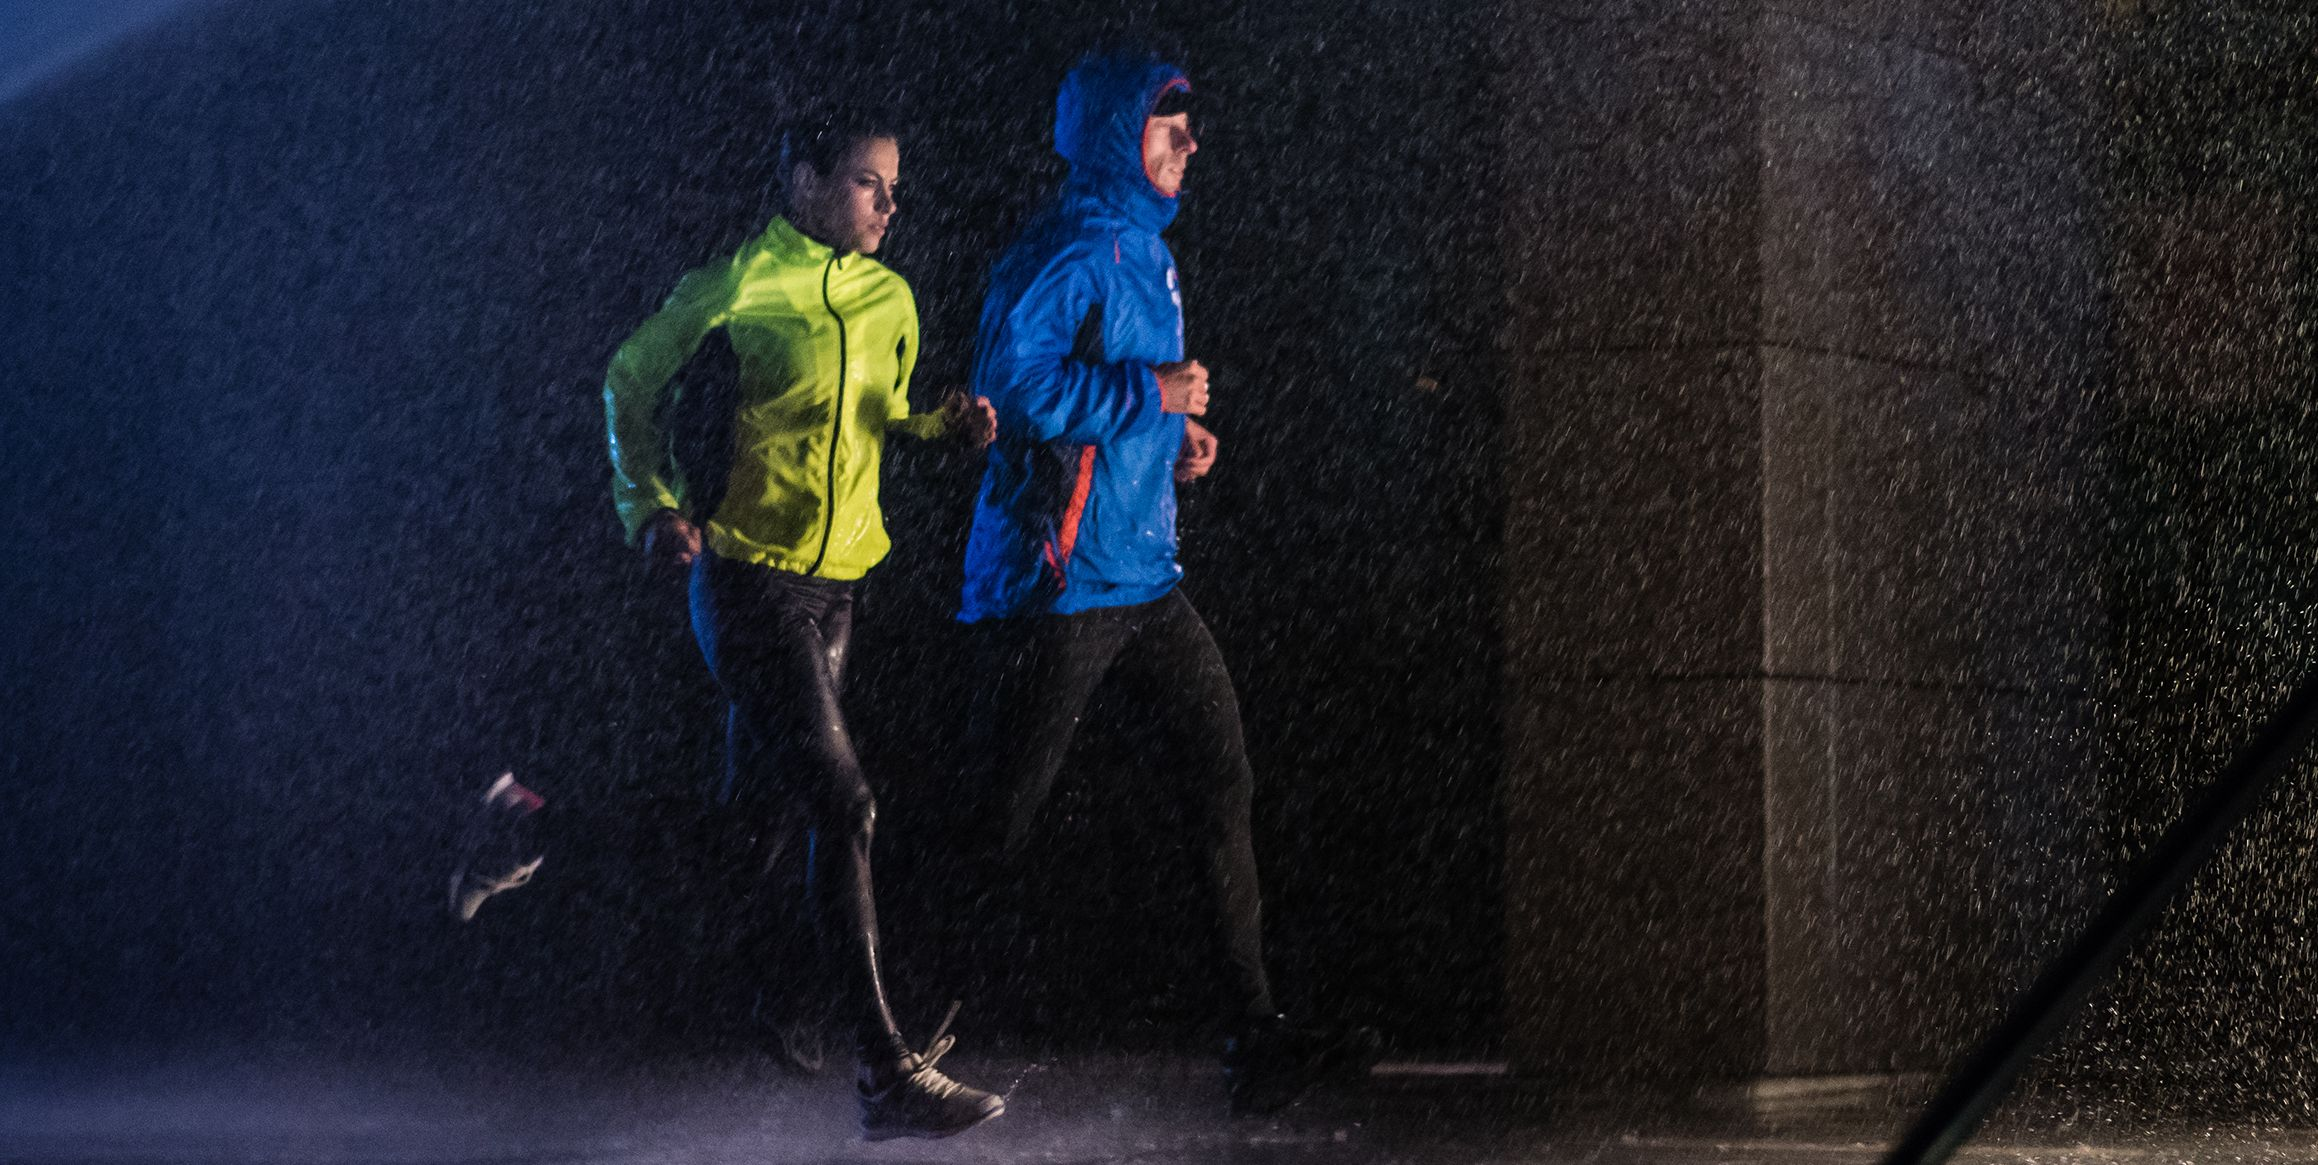 runners in rain jackets